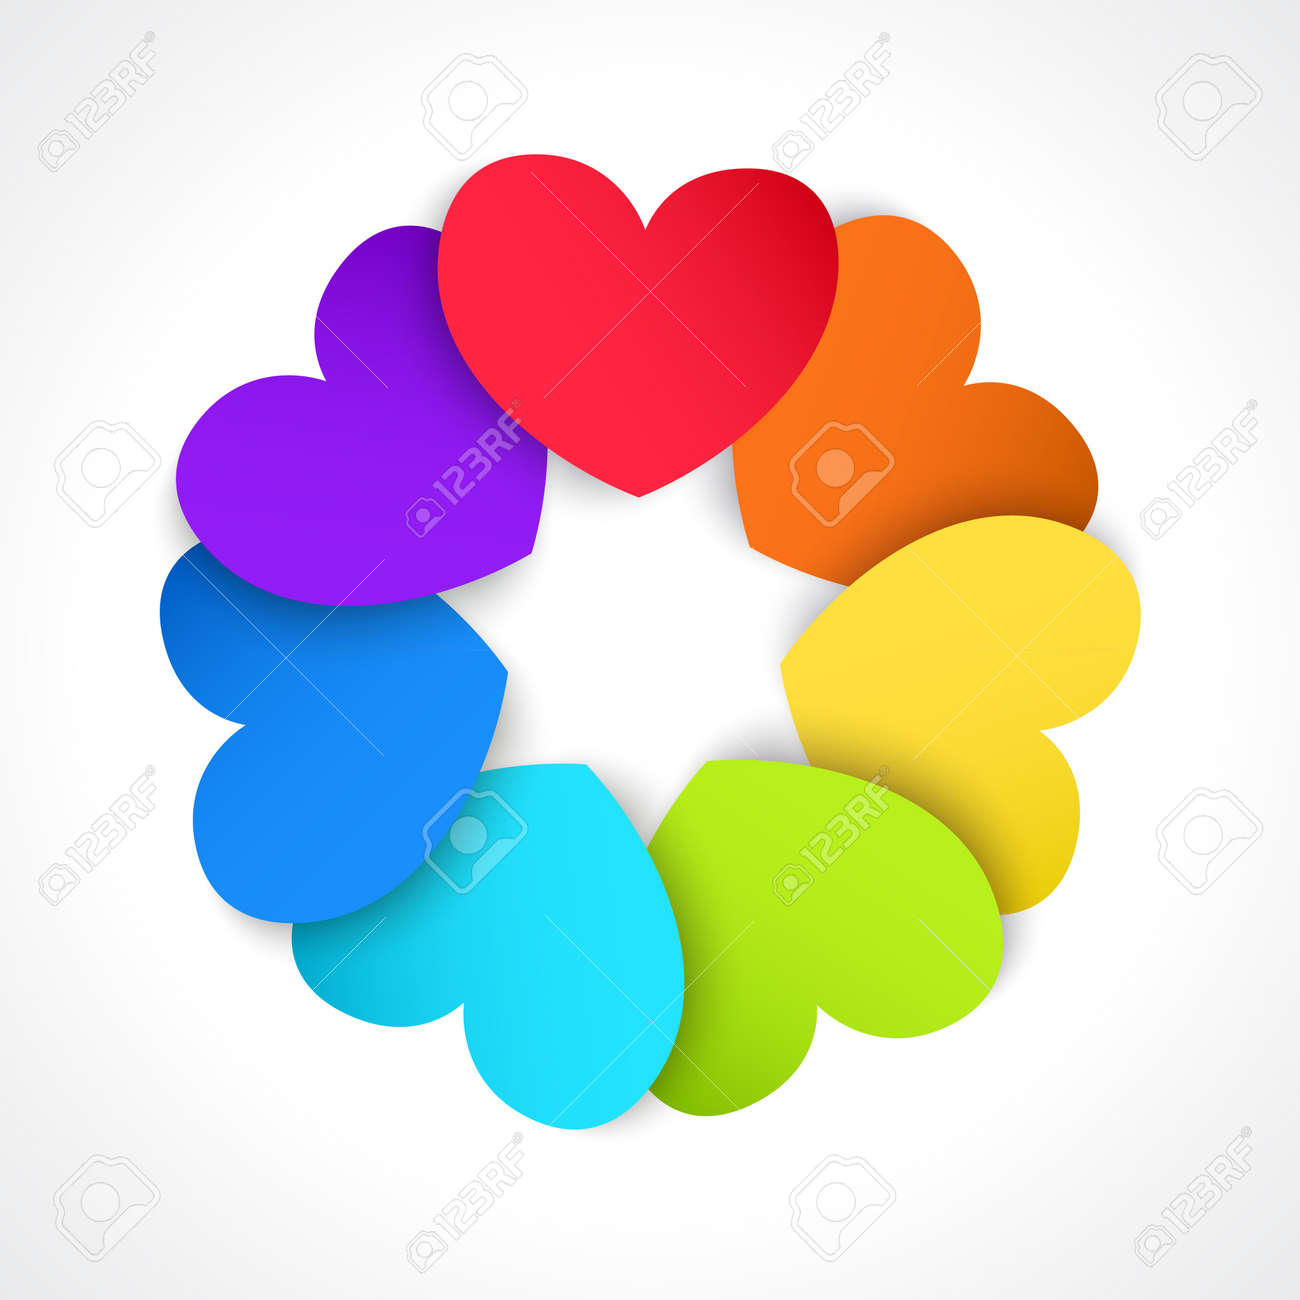 Circle of paper hearts, painted in all the colors of the rainbow Stock Vector - 17133178